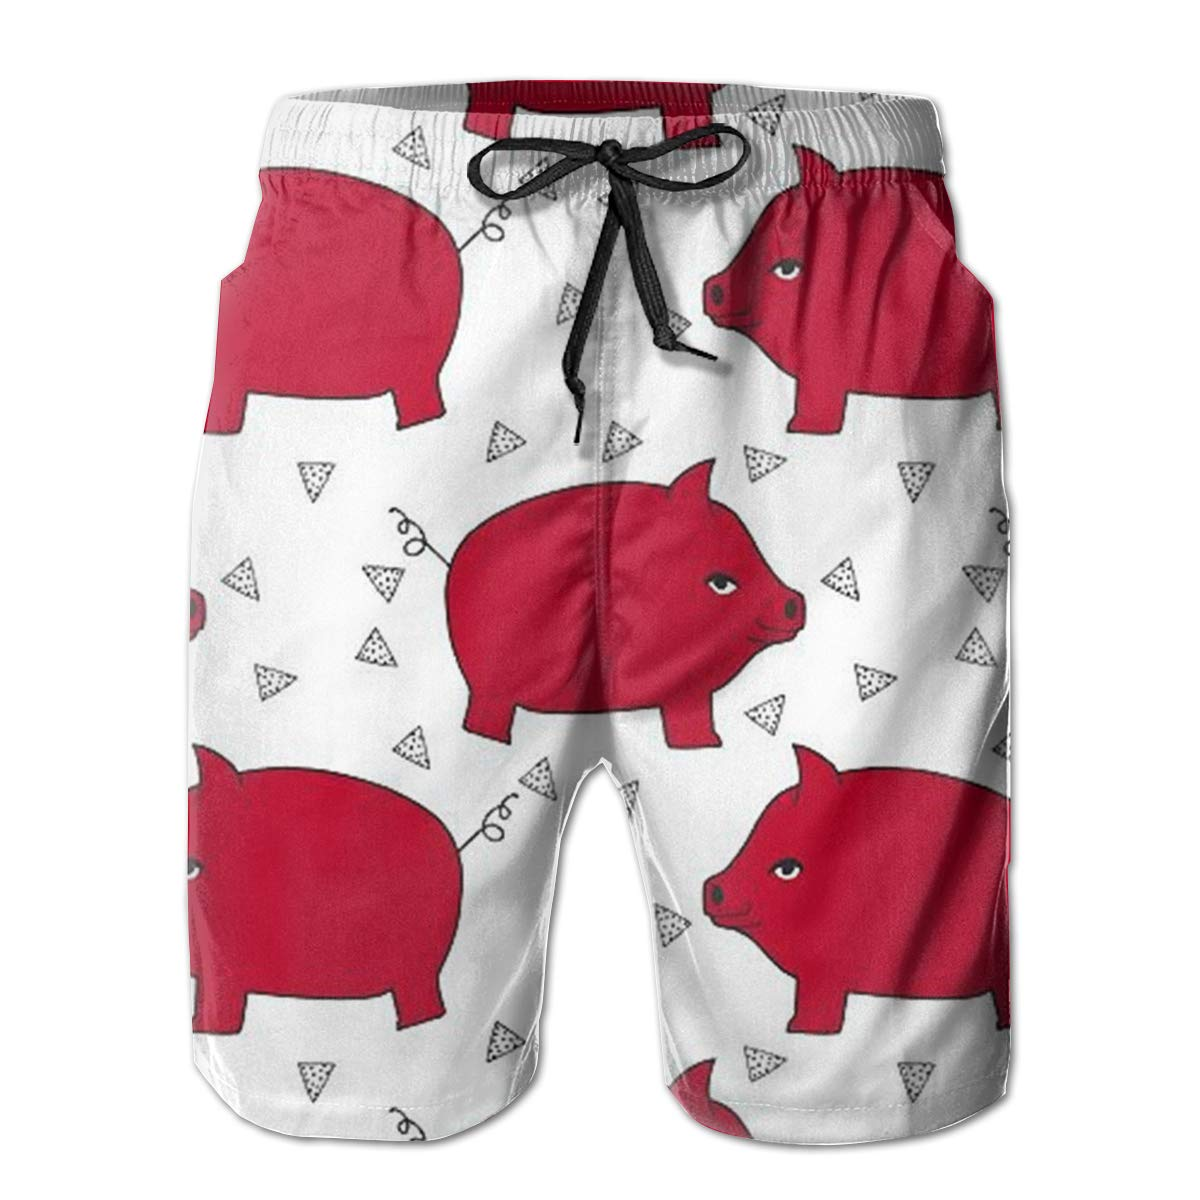 TR2YU7YT Red Pig Piggy Bank Casual Mens Swim Trunks Quick Dry Printed Beach Shorts Summer Boardshorts Bathing Suits with Mesh Lining